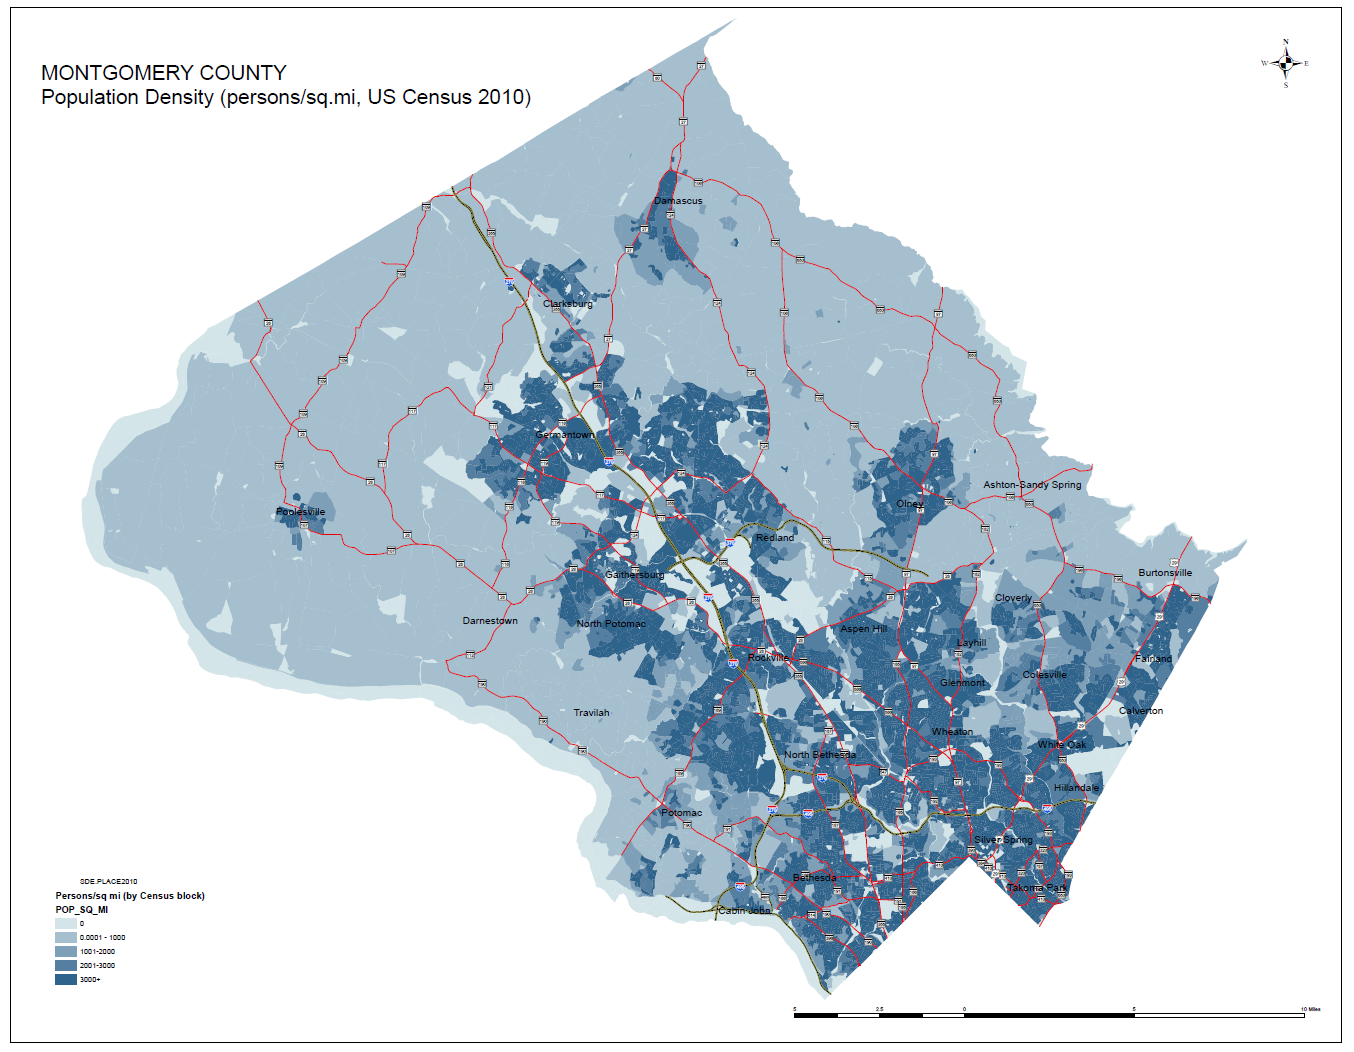 Census Bureau Estimates Population Growth Of More Than 7000 In Montgomery County - Bethesda ...